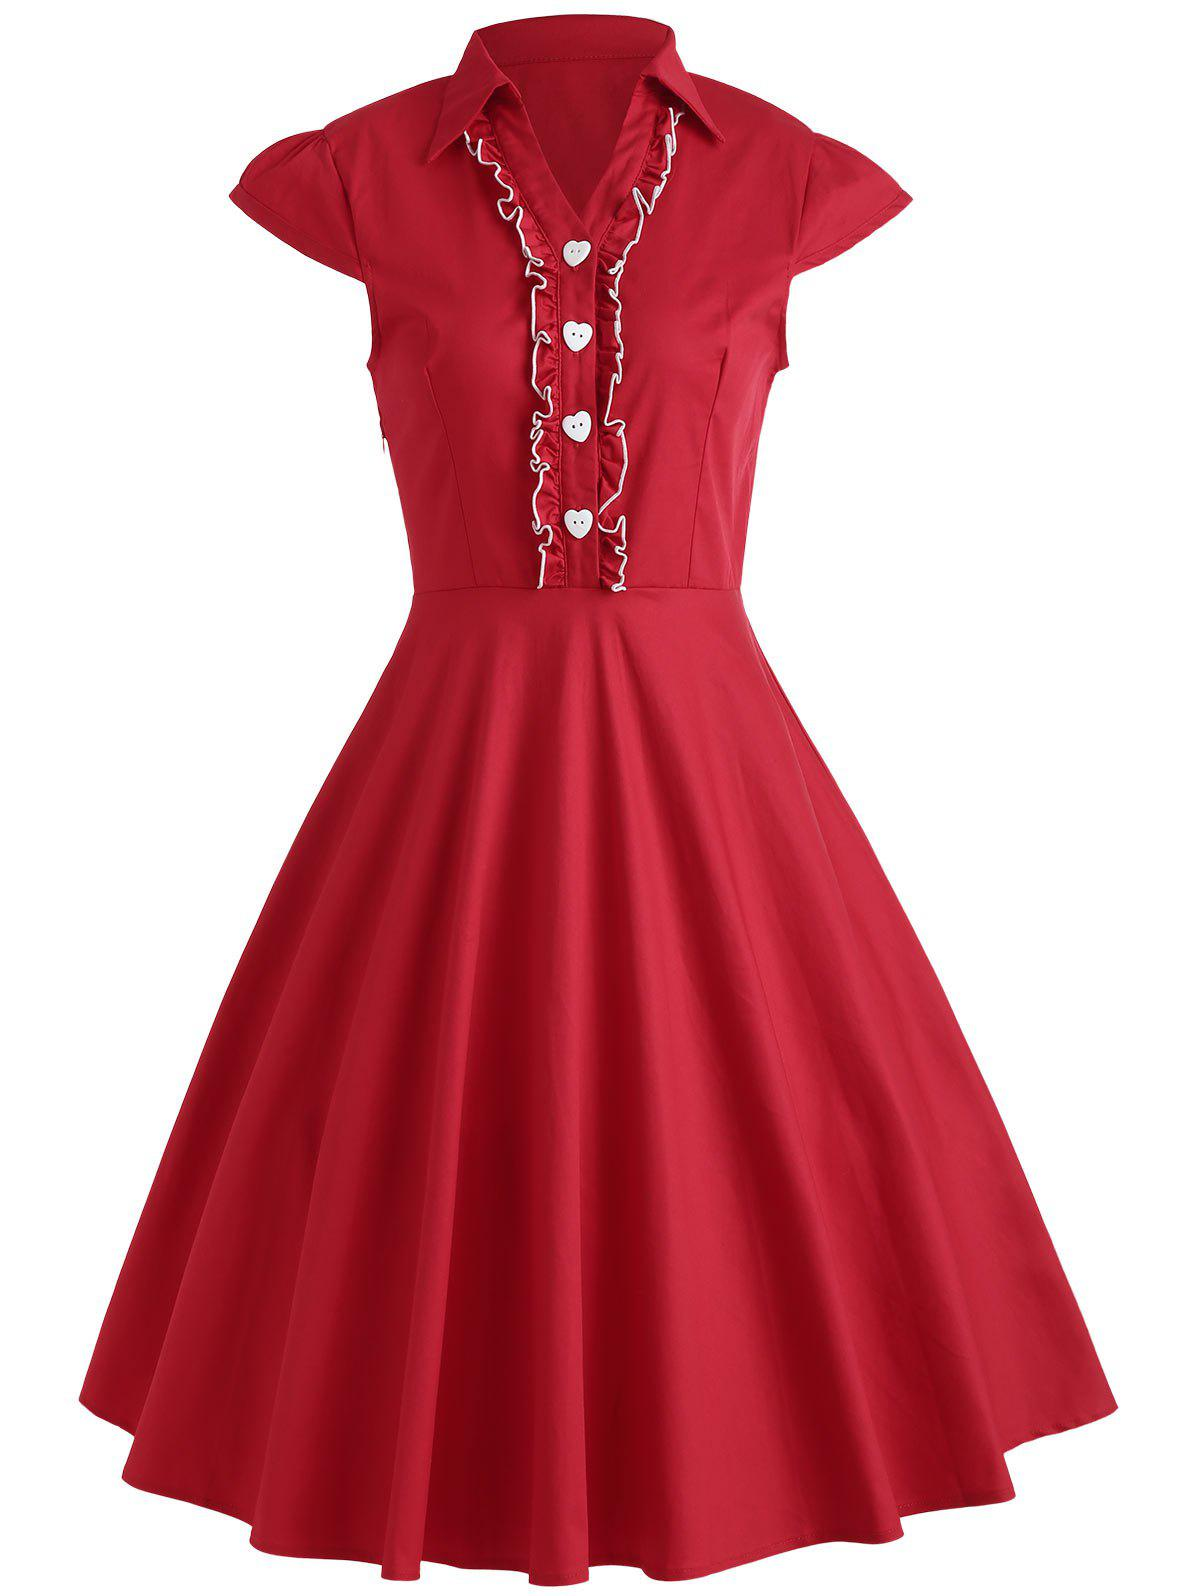 Affordable Ruffle Formal Swing Vintage Dress